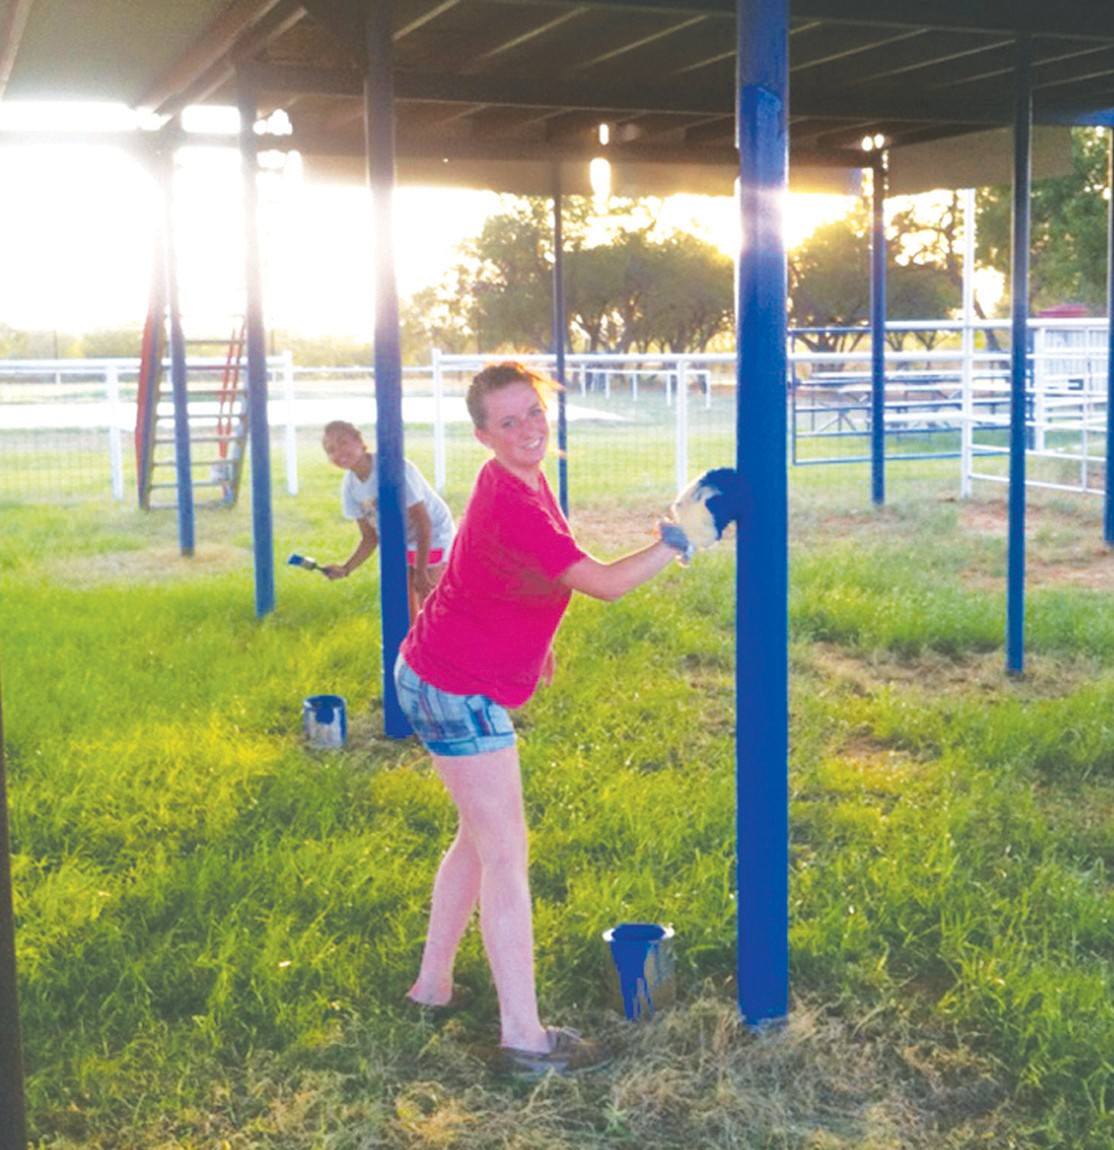 These pretty girls, Sirbina Salazar (background) and Emalee Rice (foreground), are helping to spiff up the grounds at the Atascosa Showbarn Arena in preparation for the Pleasanton Young Farmers Cowboy of the Year Rodeo Festival. The fun begins Friday night and lasts until Saturday night. Gary P. Nunn will perform on Friday after the rodeo and Steve Wariner will perform on Saturday. Barbecue cook-off, washer tourney and welding rig contest are planned for Saturday during the day.